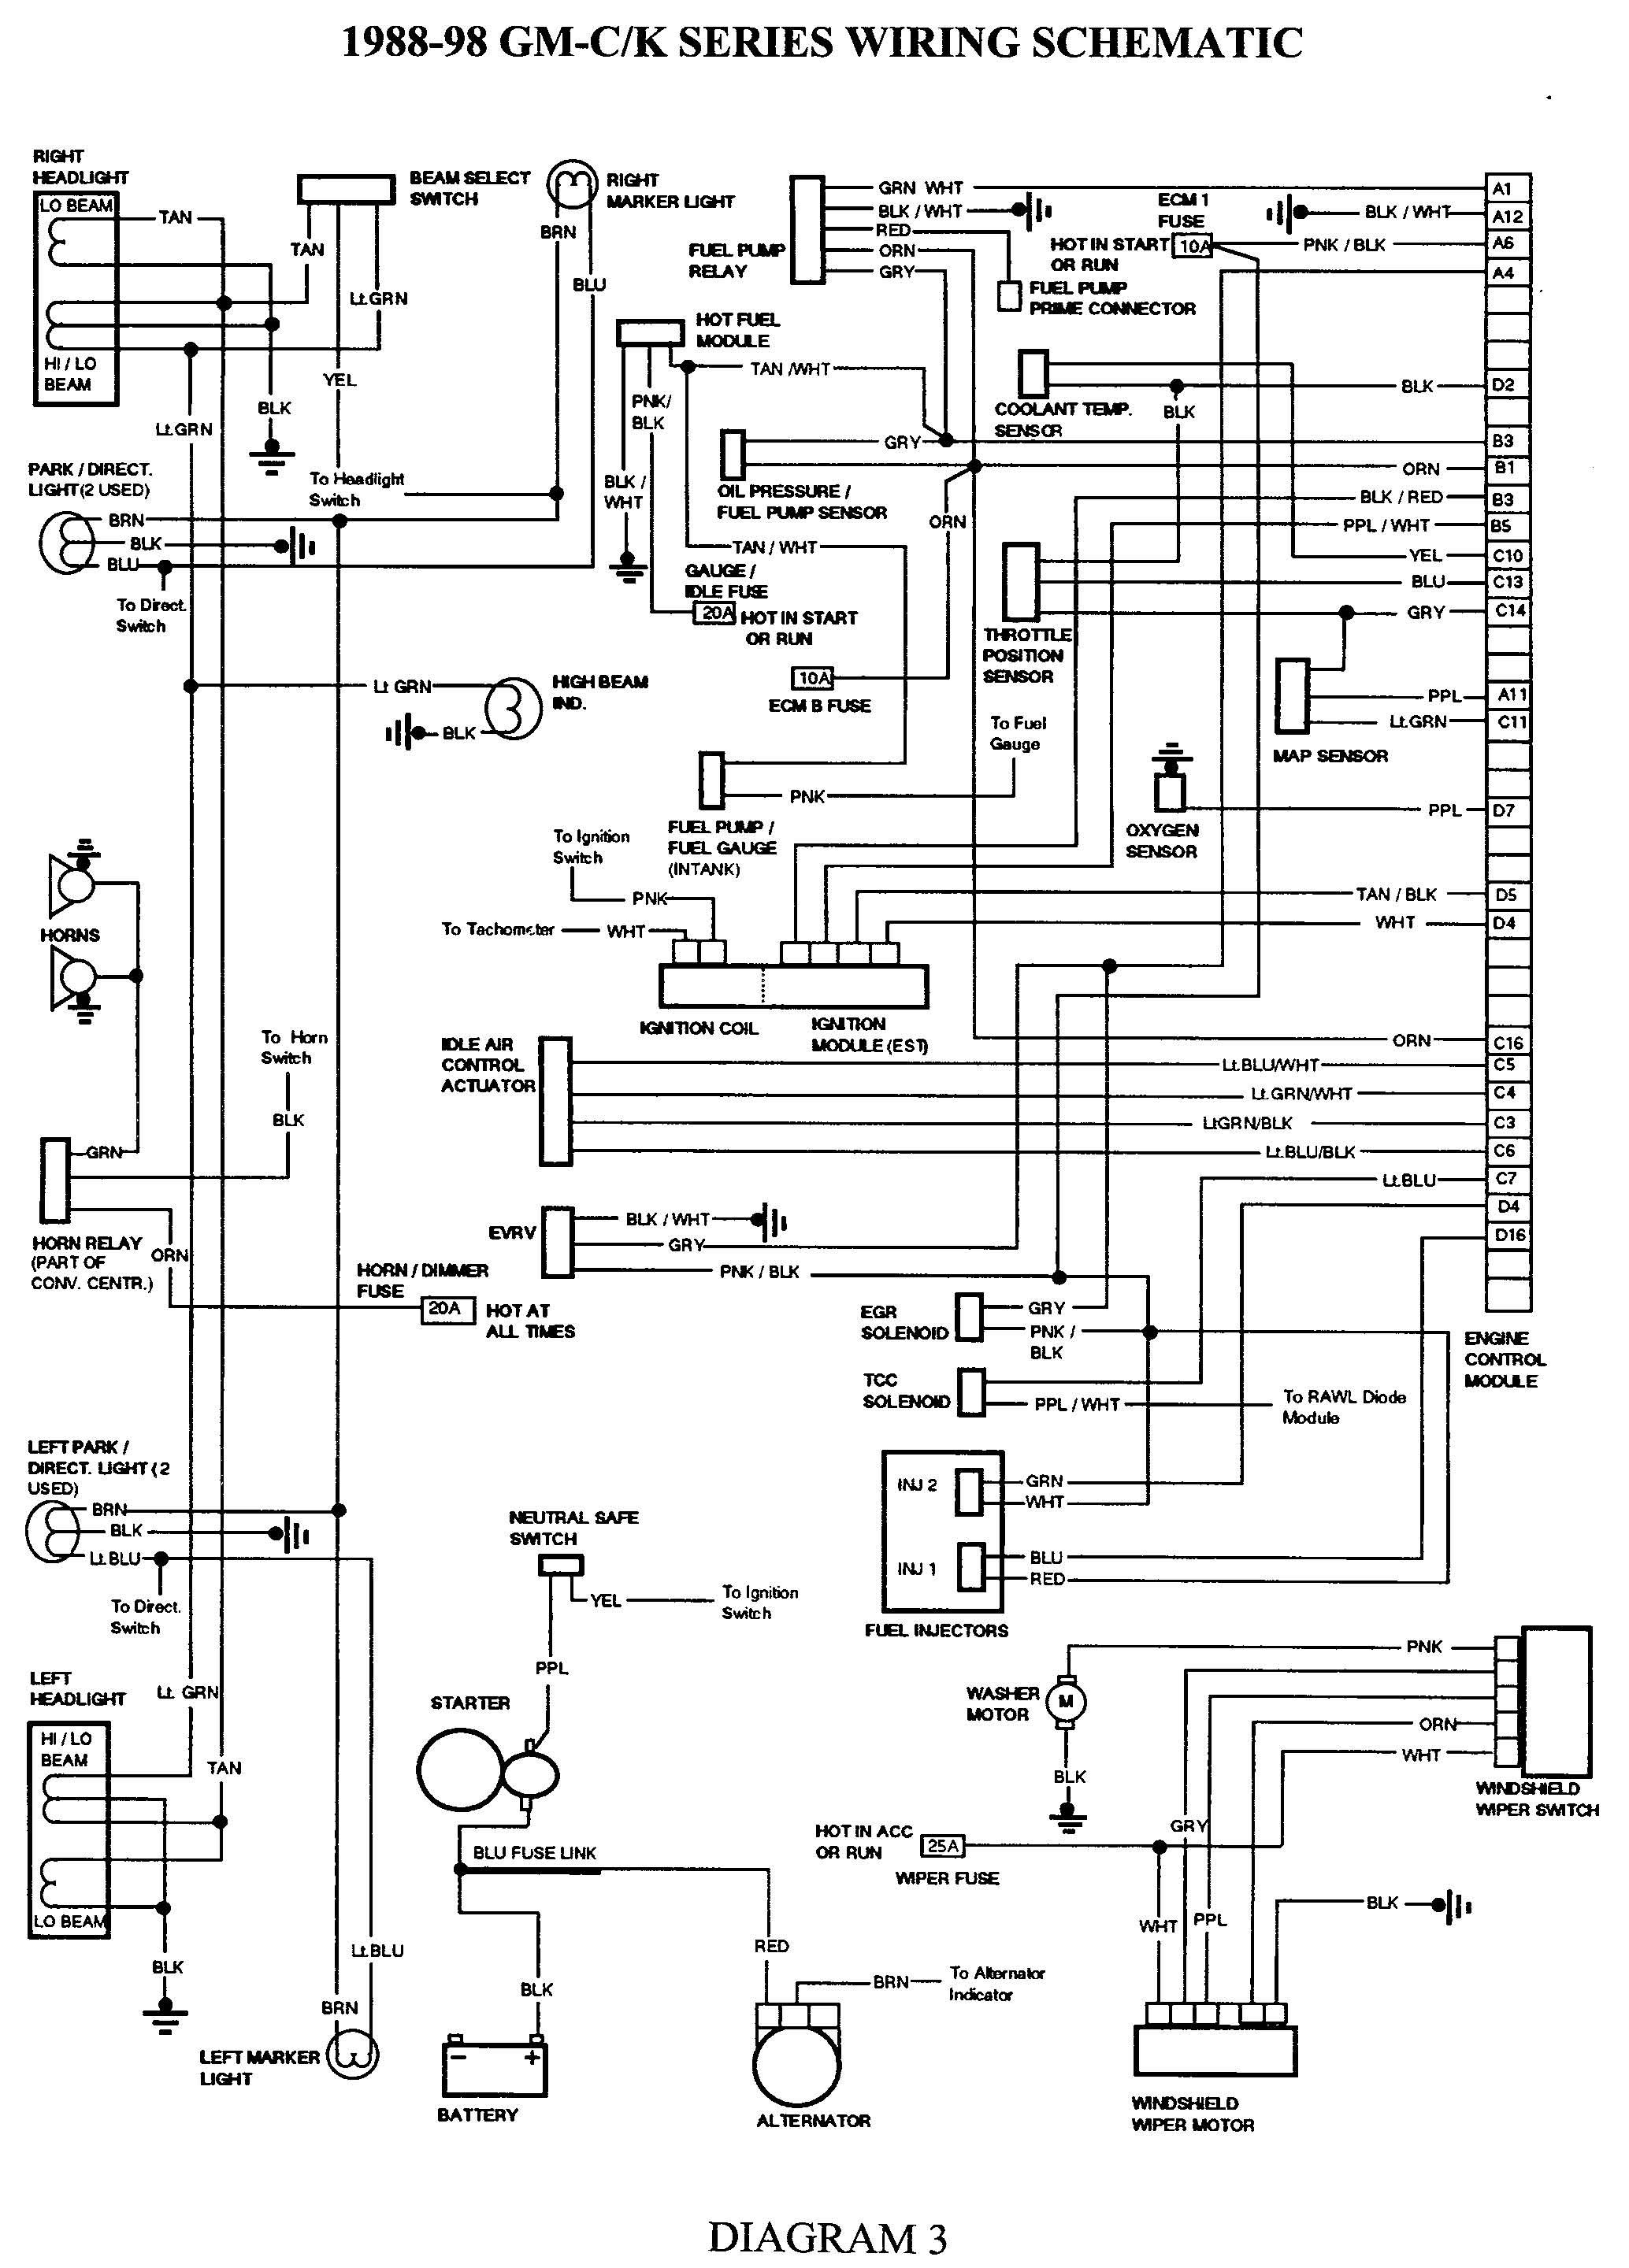 gmc truck wiring diagrams on gm wiring harness diagram 88 98 kc rh pinterest com chevrolet truck wiring diagrams free chevrolet truck wiring diagrams